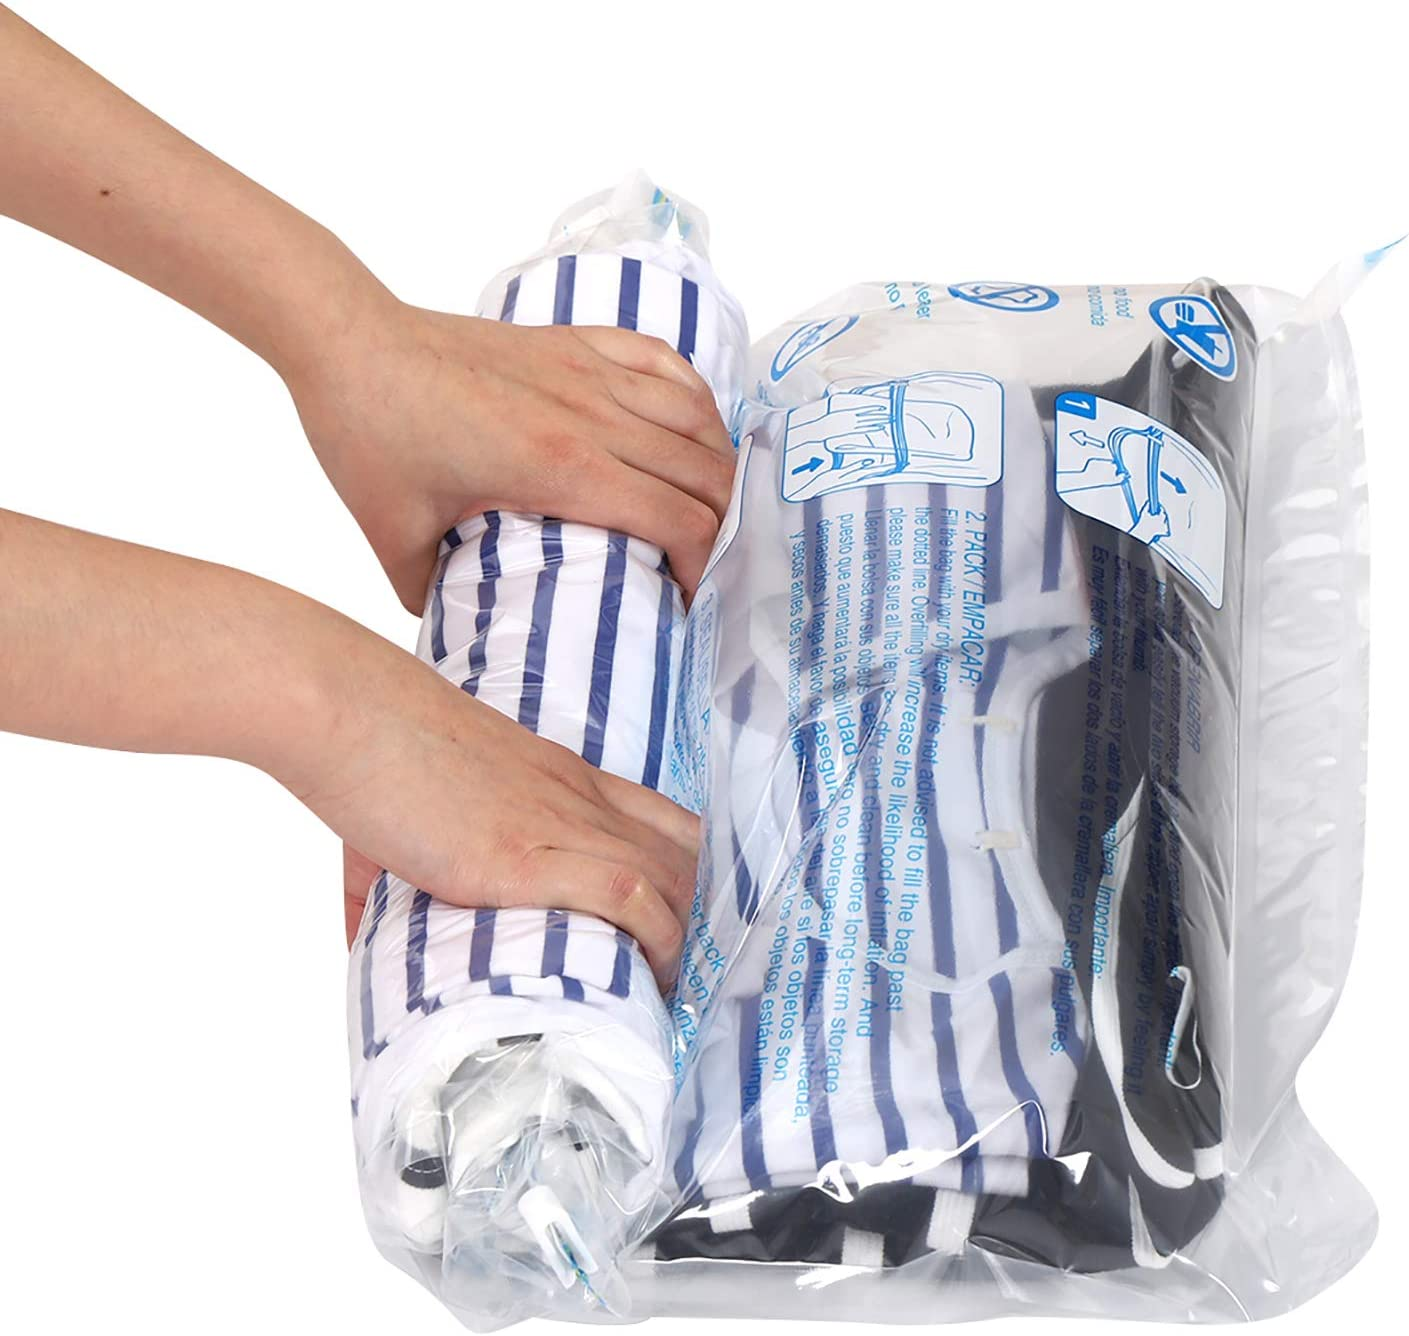 Amazon Com 12 Travel Compression Bags Hibag 12 Pack Roll Up Space Saver Storage Bags For Travel Suitcase Size 12 Travel Home Improvement